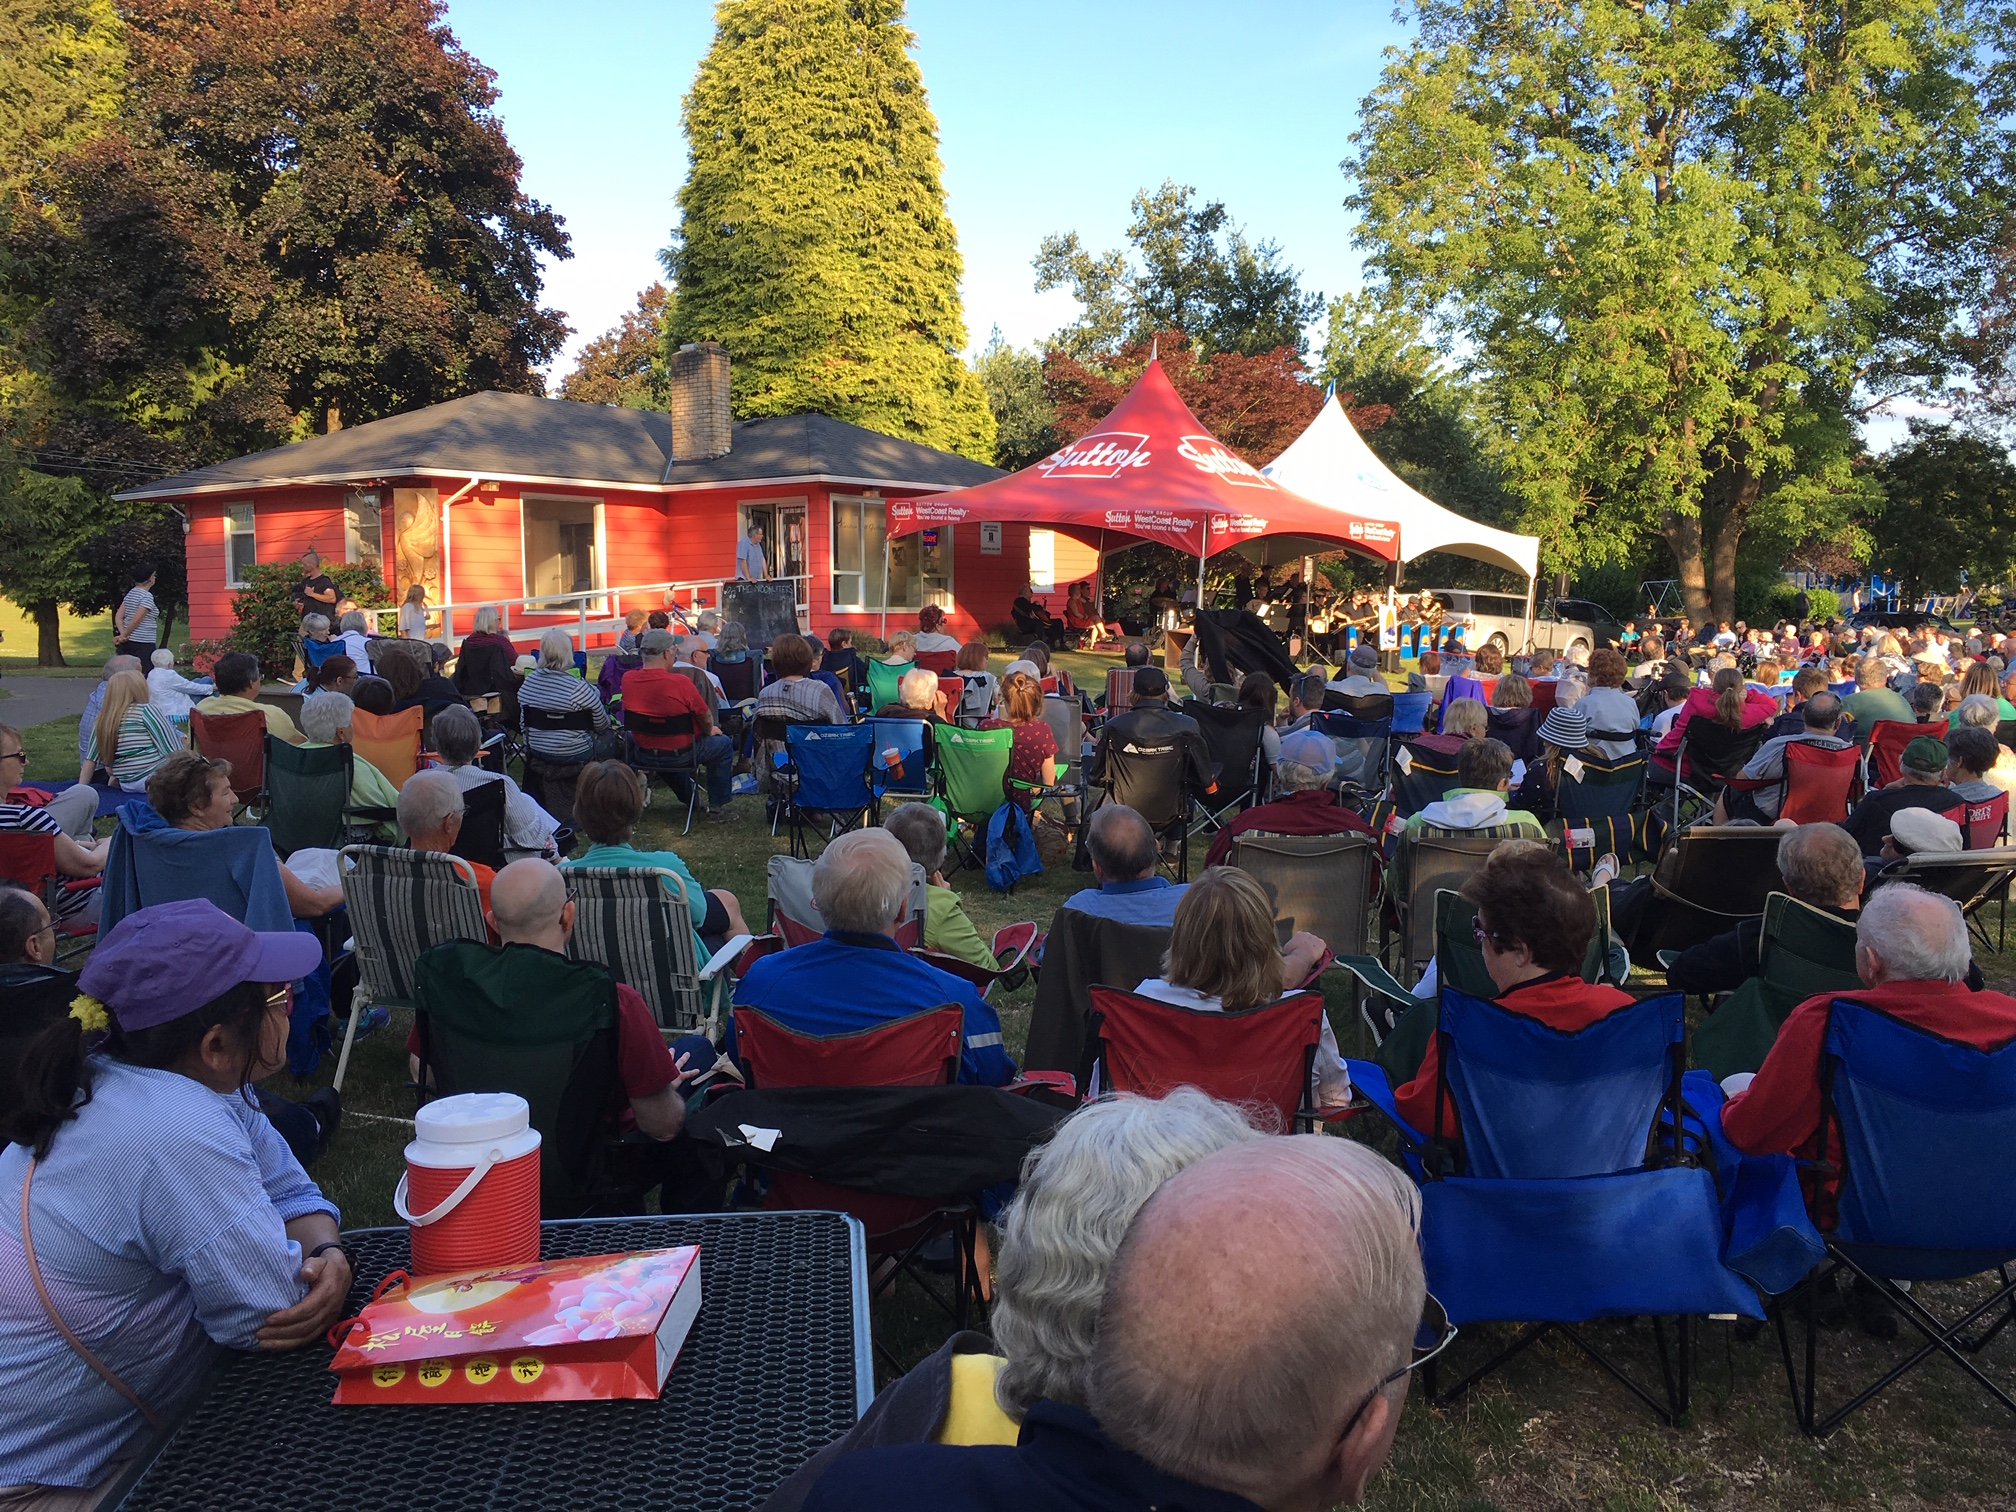 The Abbotsford Arts Council presents its summer Mill Lake Concert Series